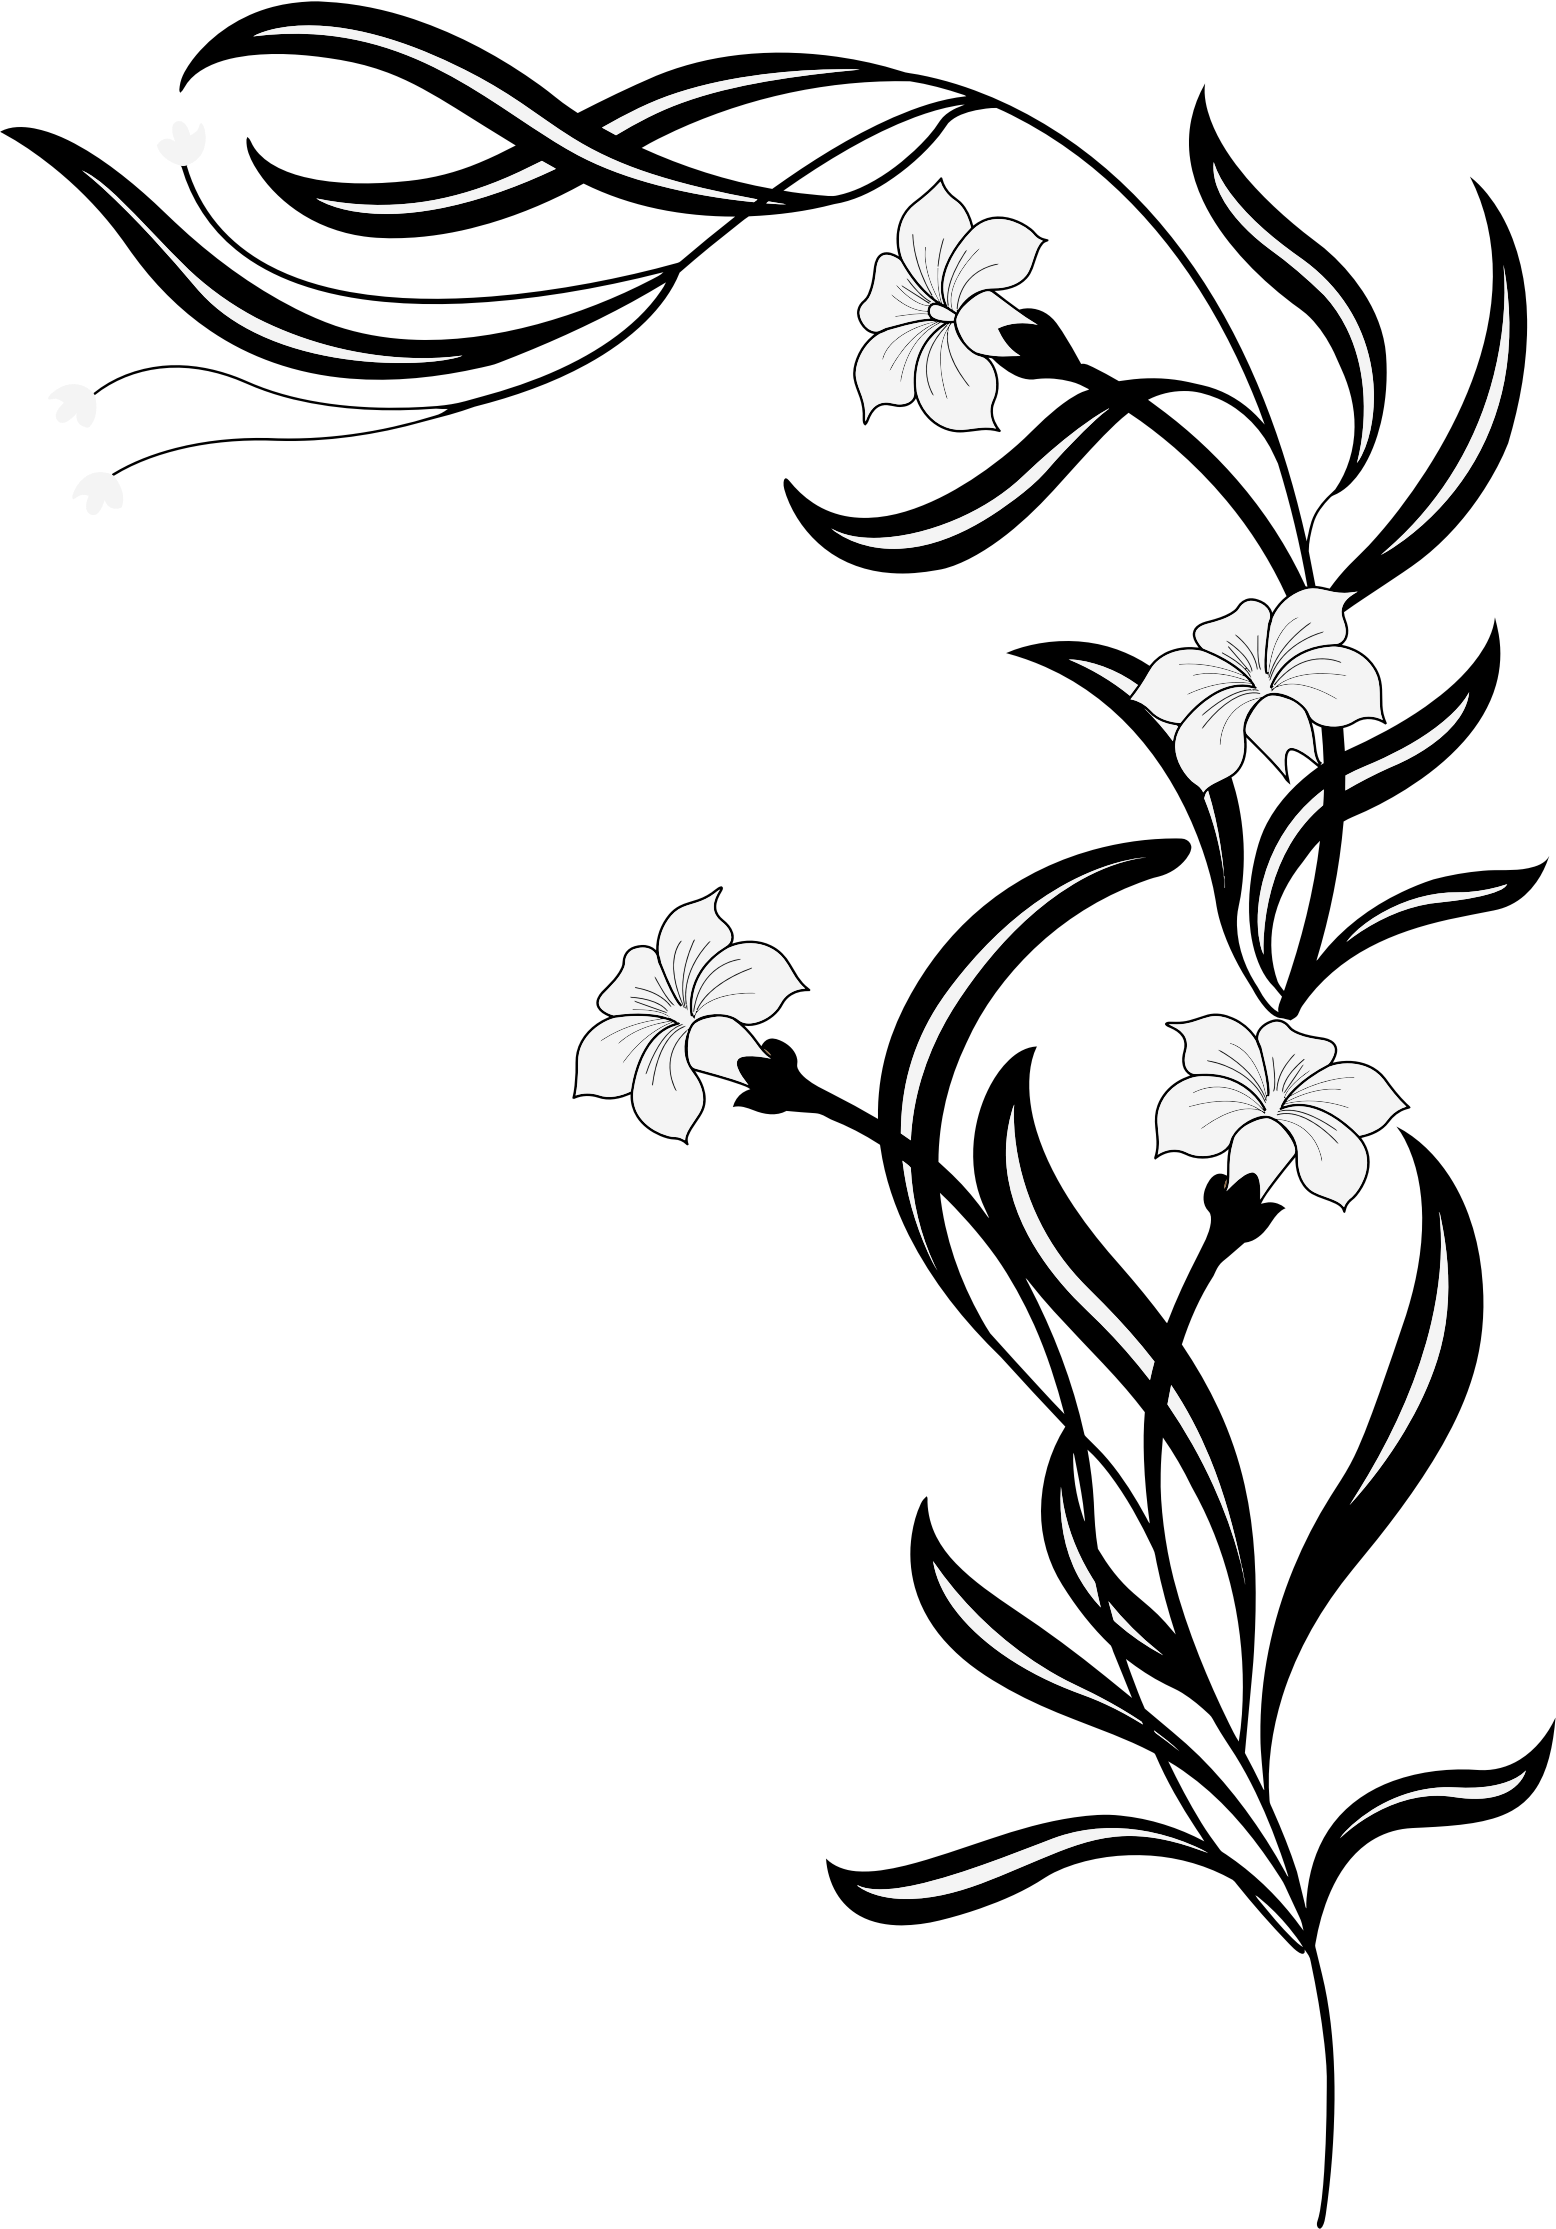 Black And White Flowers by GDJ